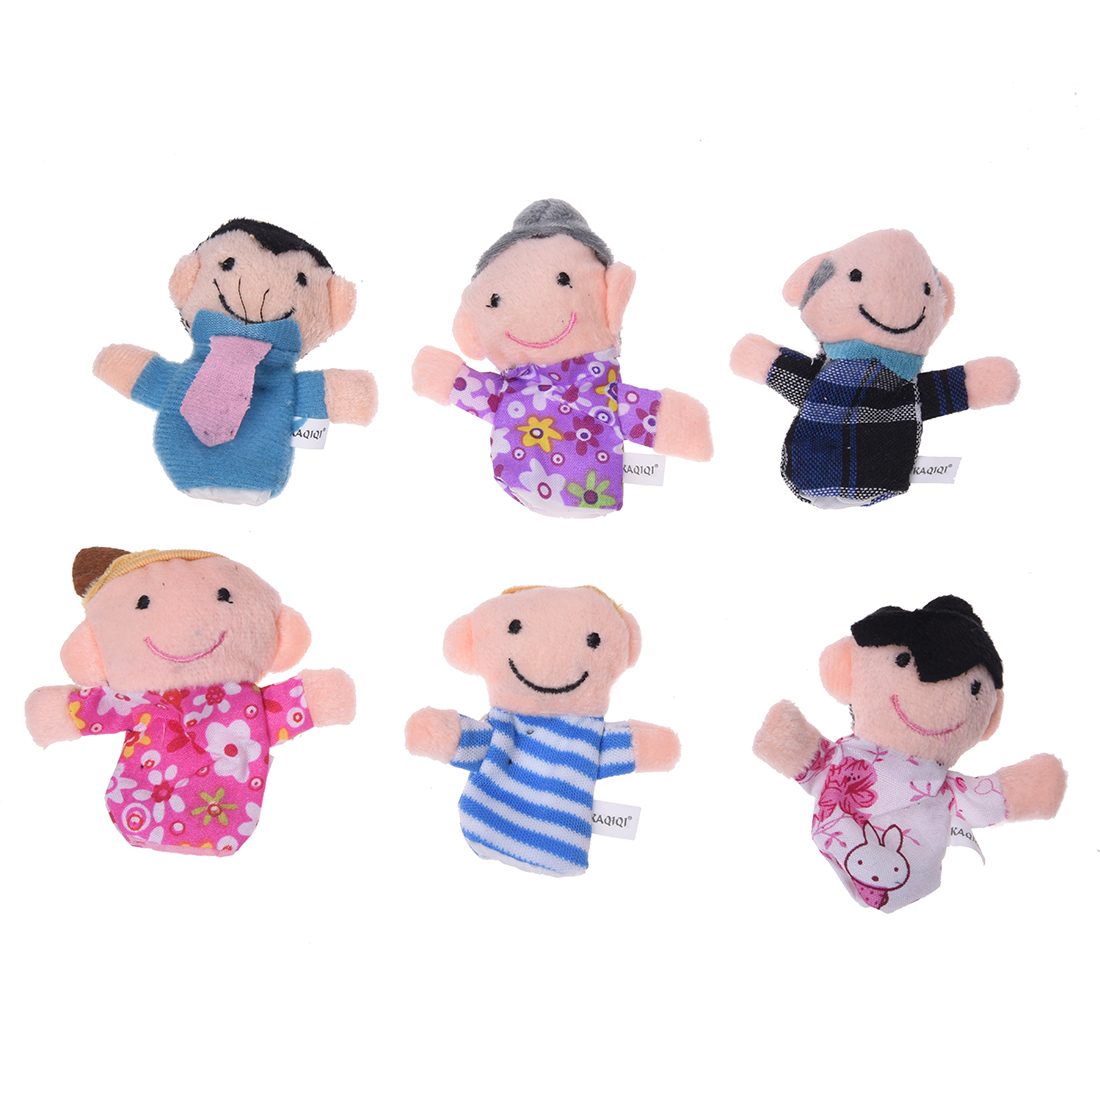 6Pcs Family Finger Puppet Cloth Baby Childs Kid Play Learn Story Helper Toy Doll